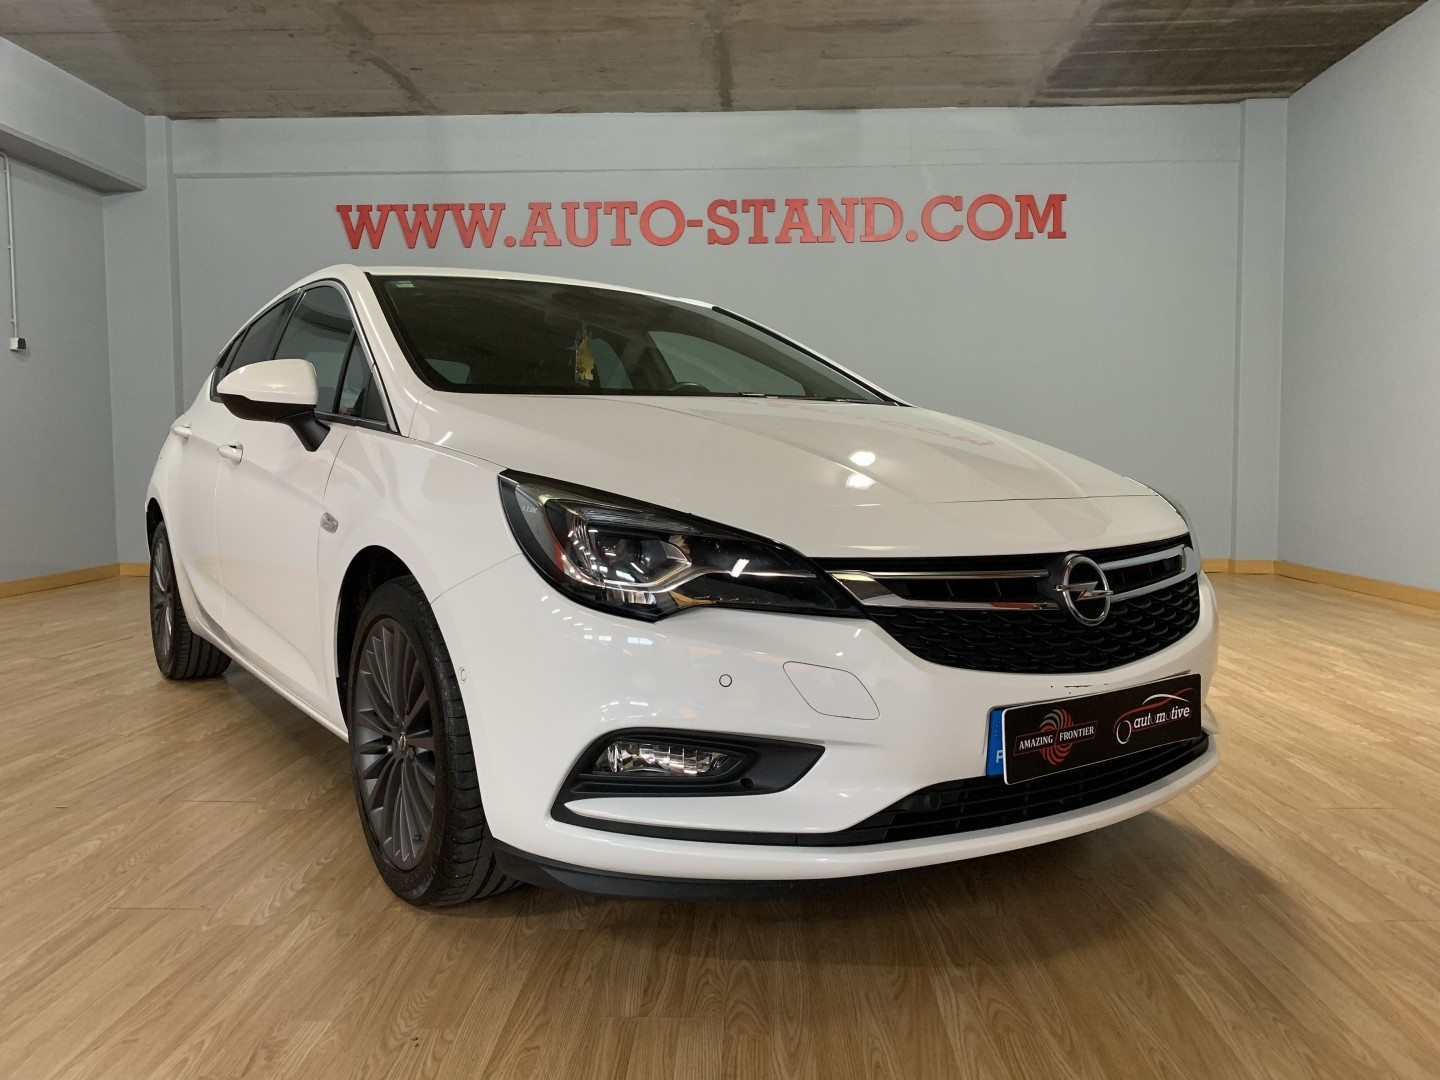 Opel Astra 1.6 ctdi innovation